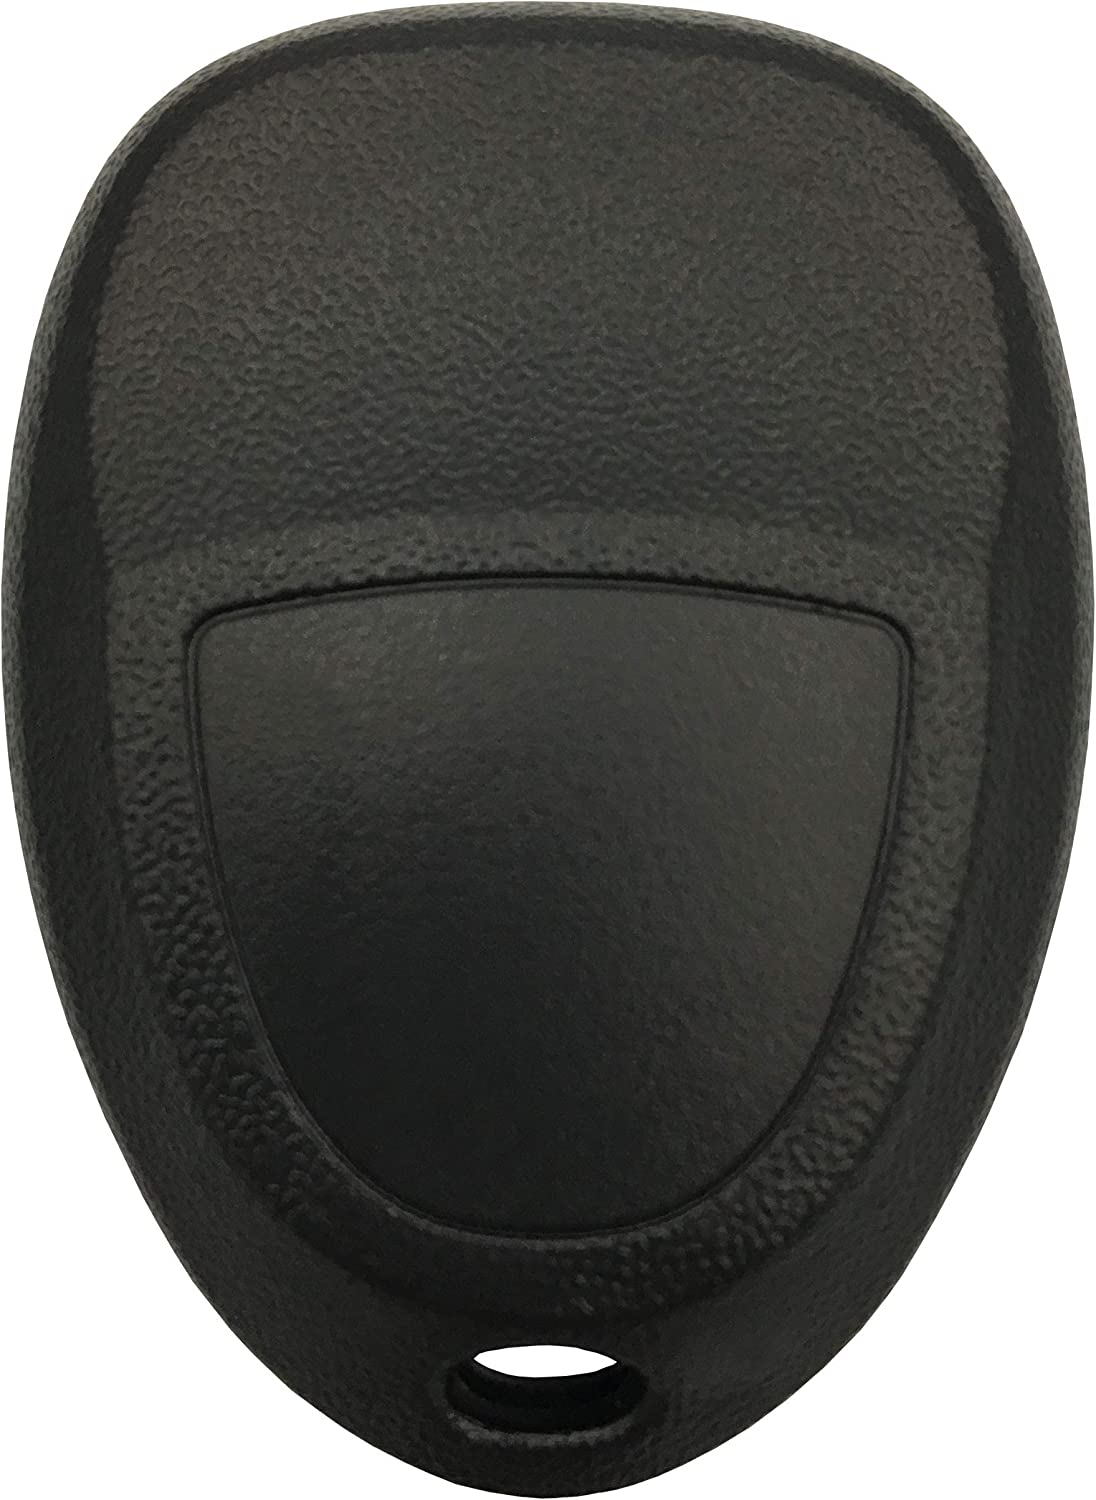 Keyless Entry Remote Car Key Shell Casing Replacement Key Fob Case Fit for 2007-2014 Suburban Tahoe Traverse//GMC Acadia Yukon//Cadillac Escalade SRX//Buick Enclave//Saturn Outlook